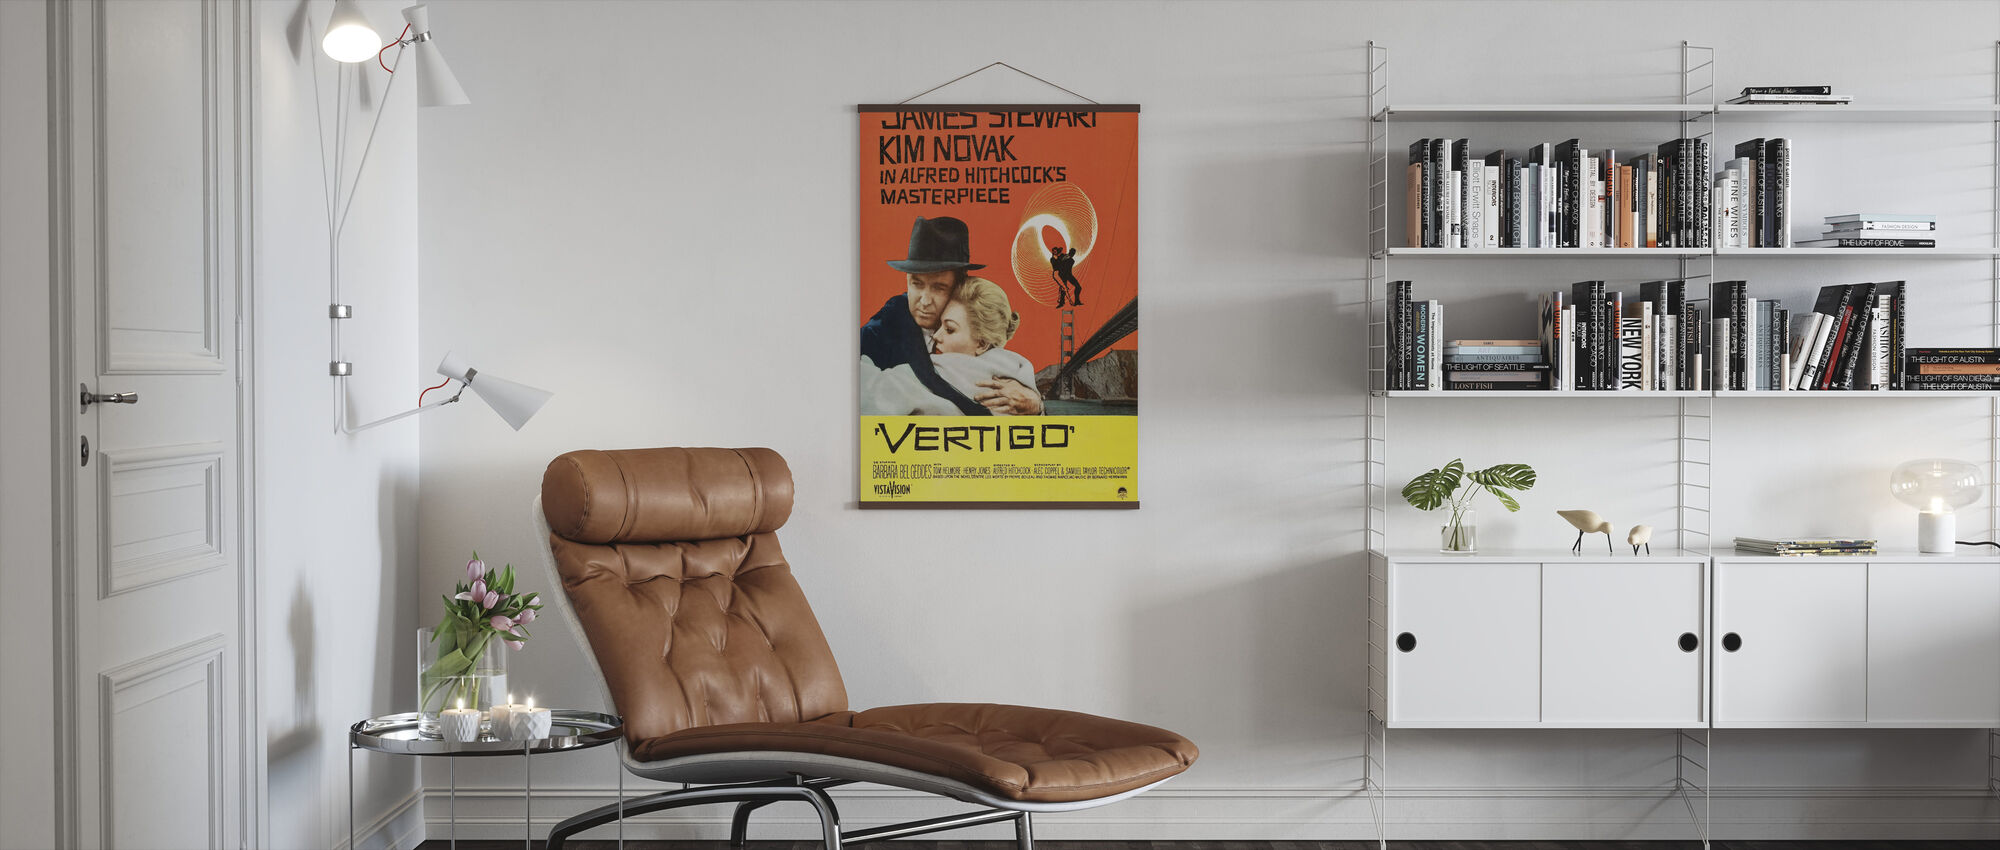 Vertigo - Poster - Living Room